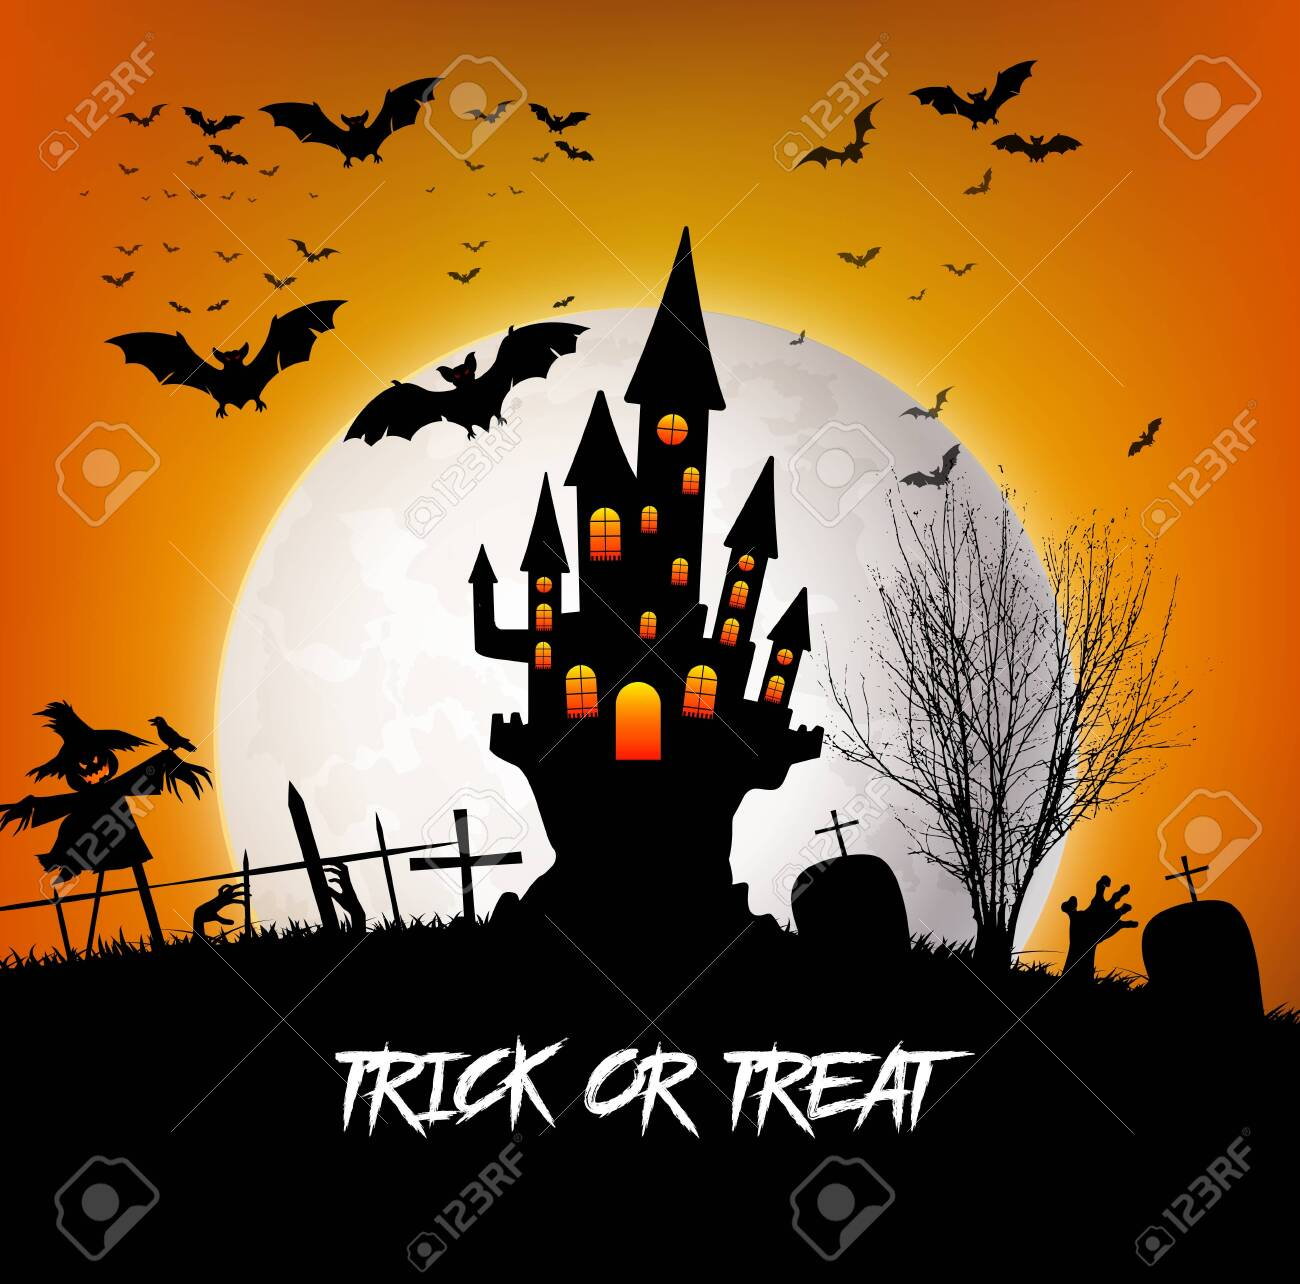 Trick or Treat Halloween with castle and moon - 151531822